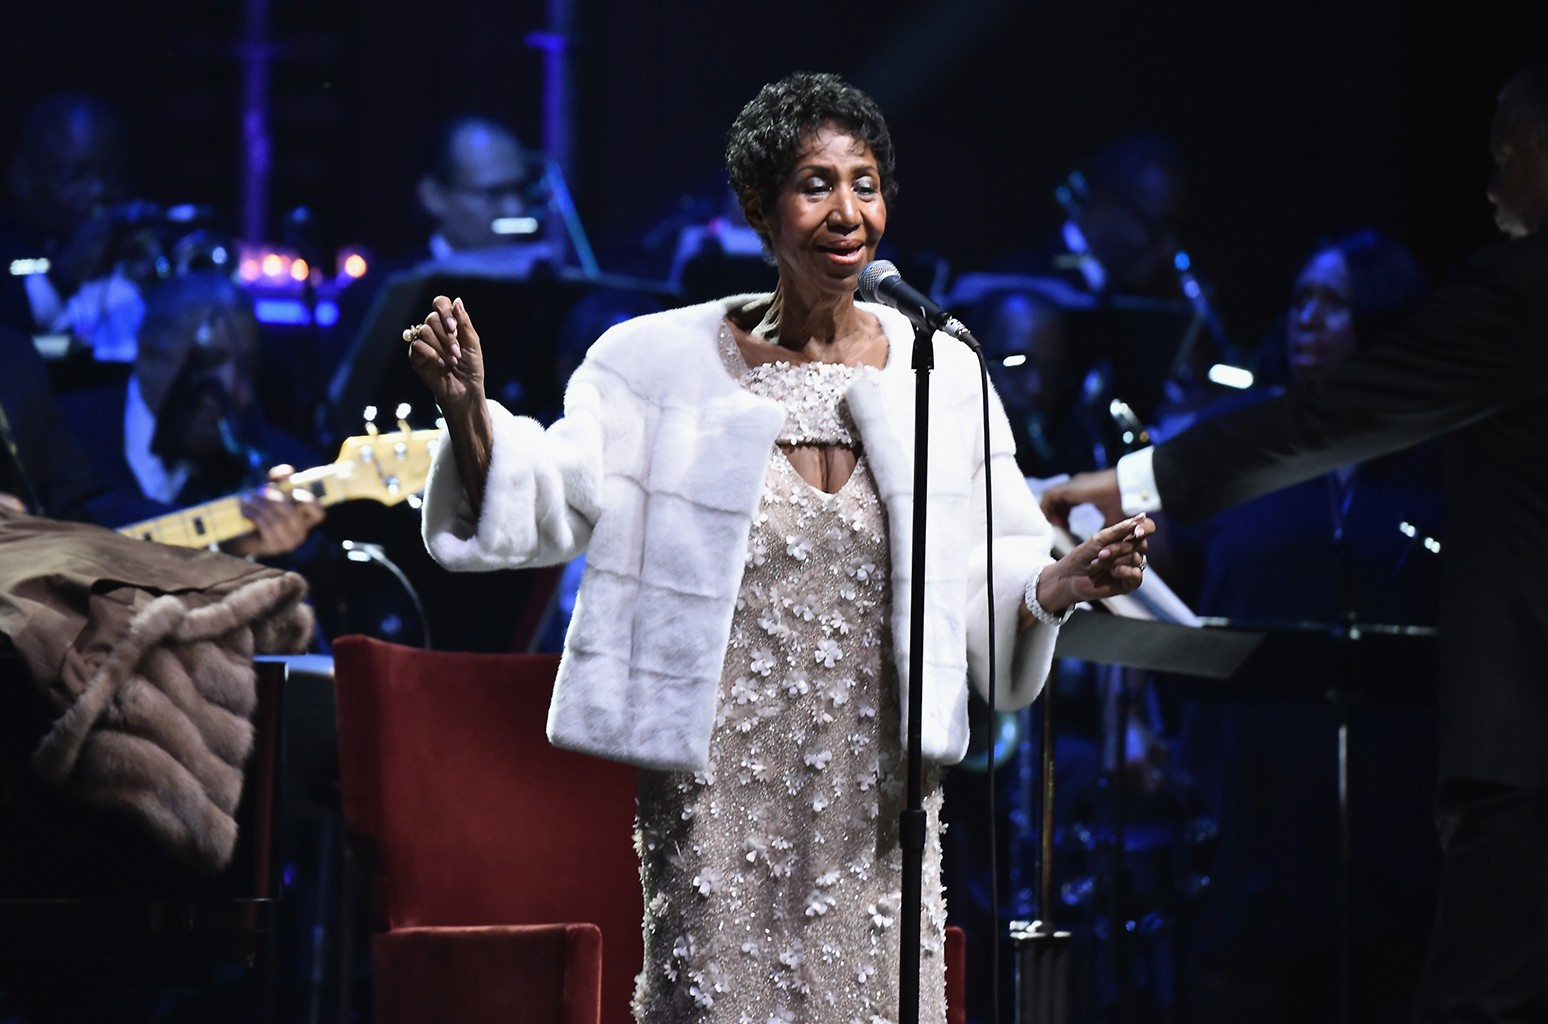 Aretha Franklin Elton John Aids Foundation